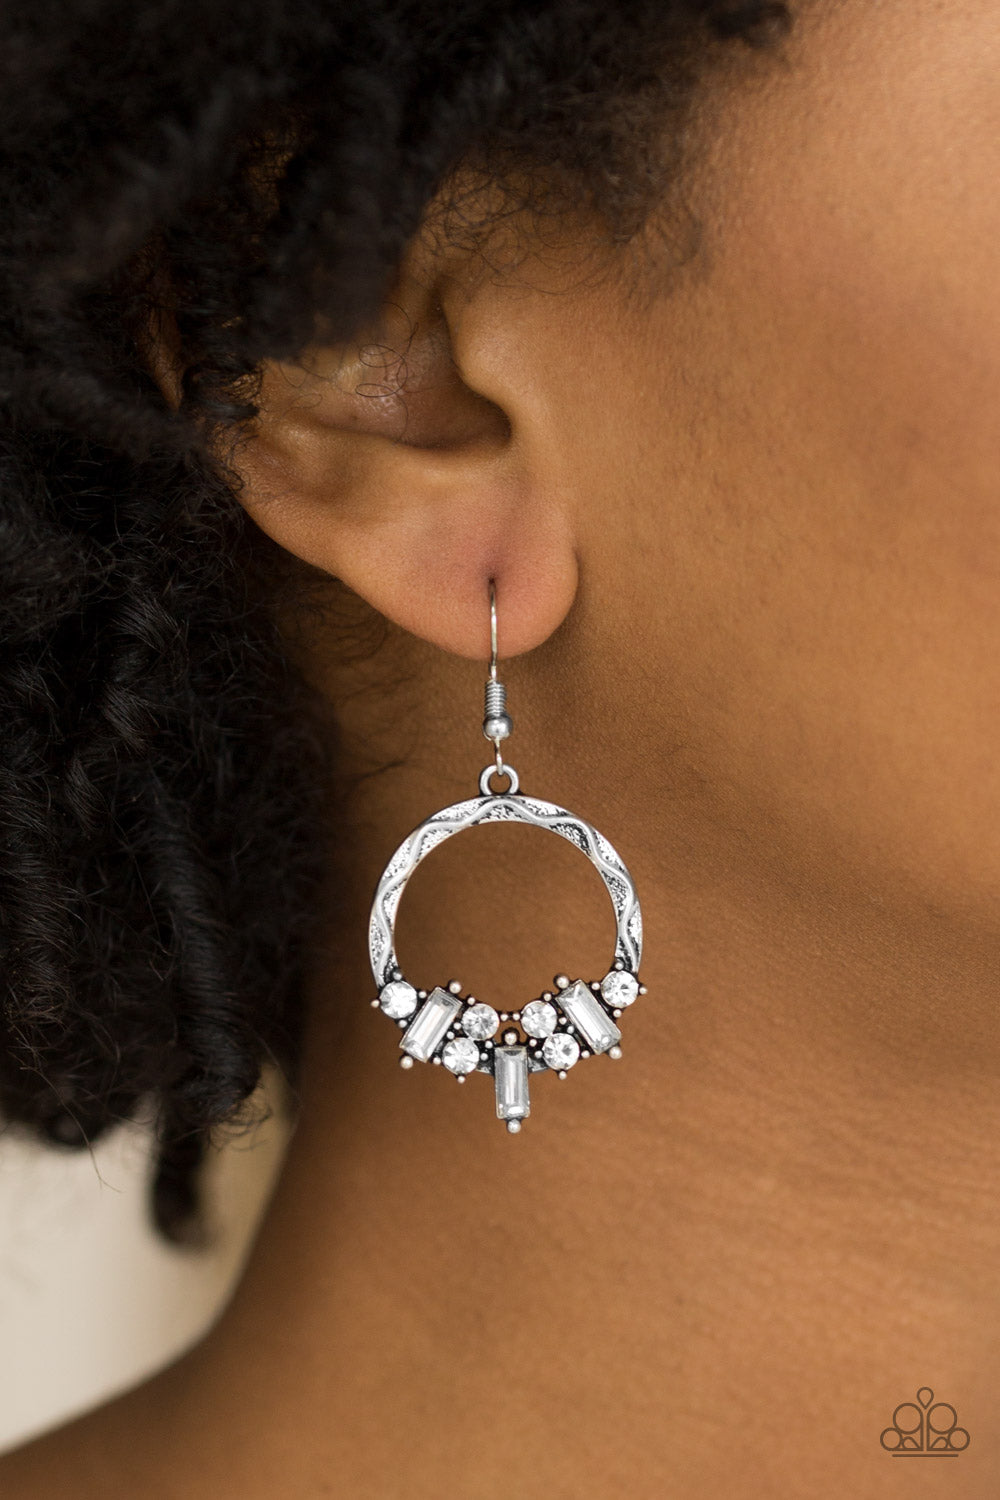 Featuring round and emerald style cuts, radiant white rhinestones are encrusted along the bottom of an ornate silver hoop for an edgy look. Earring attaches to a standard fishhook fitting.  Sold as one pair of earrings.  Always nickel and lead free.